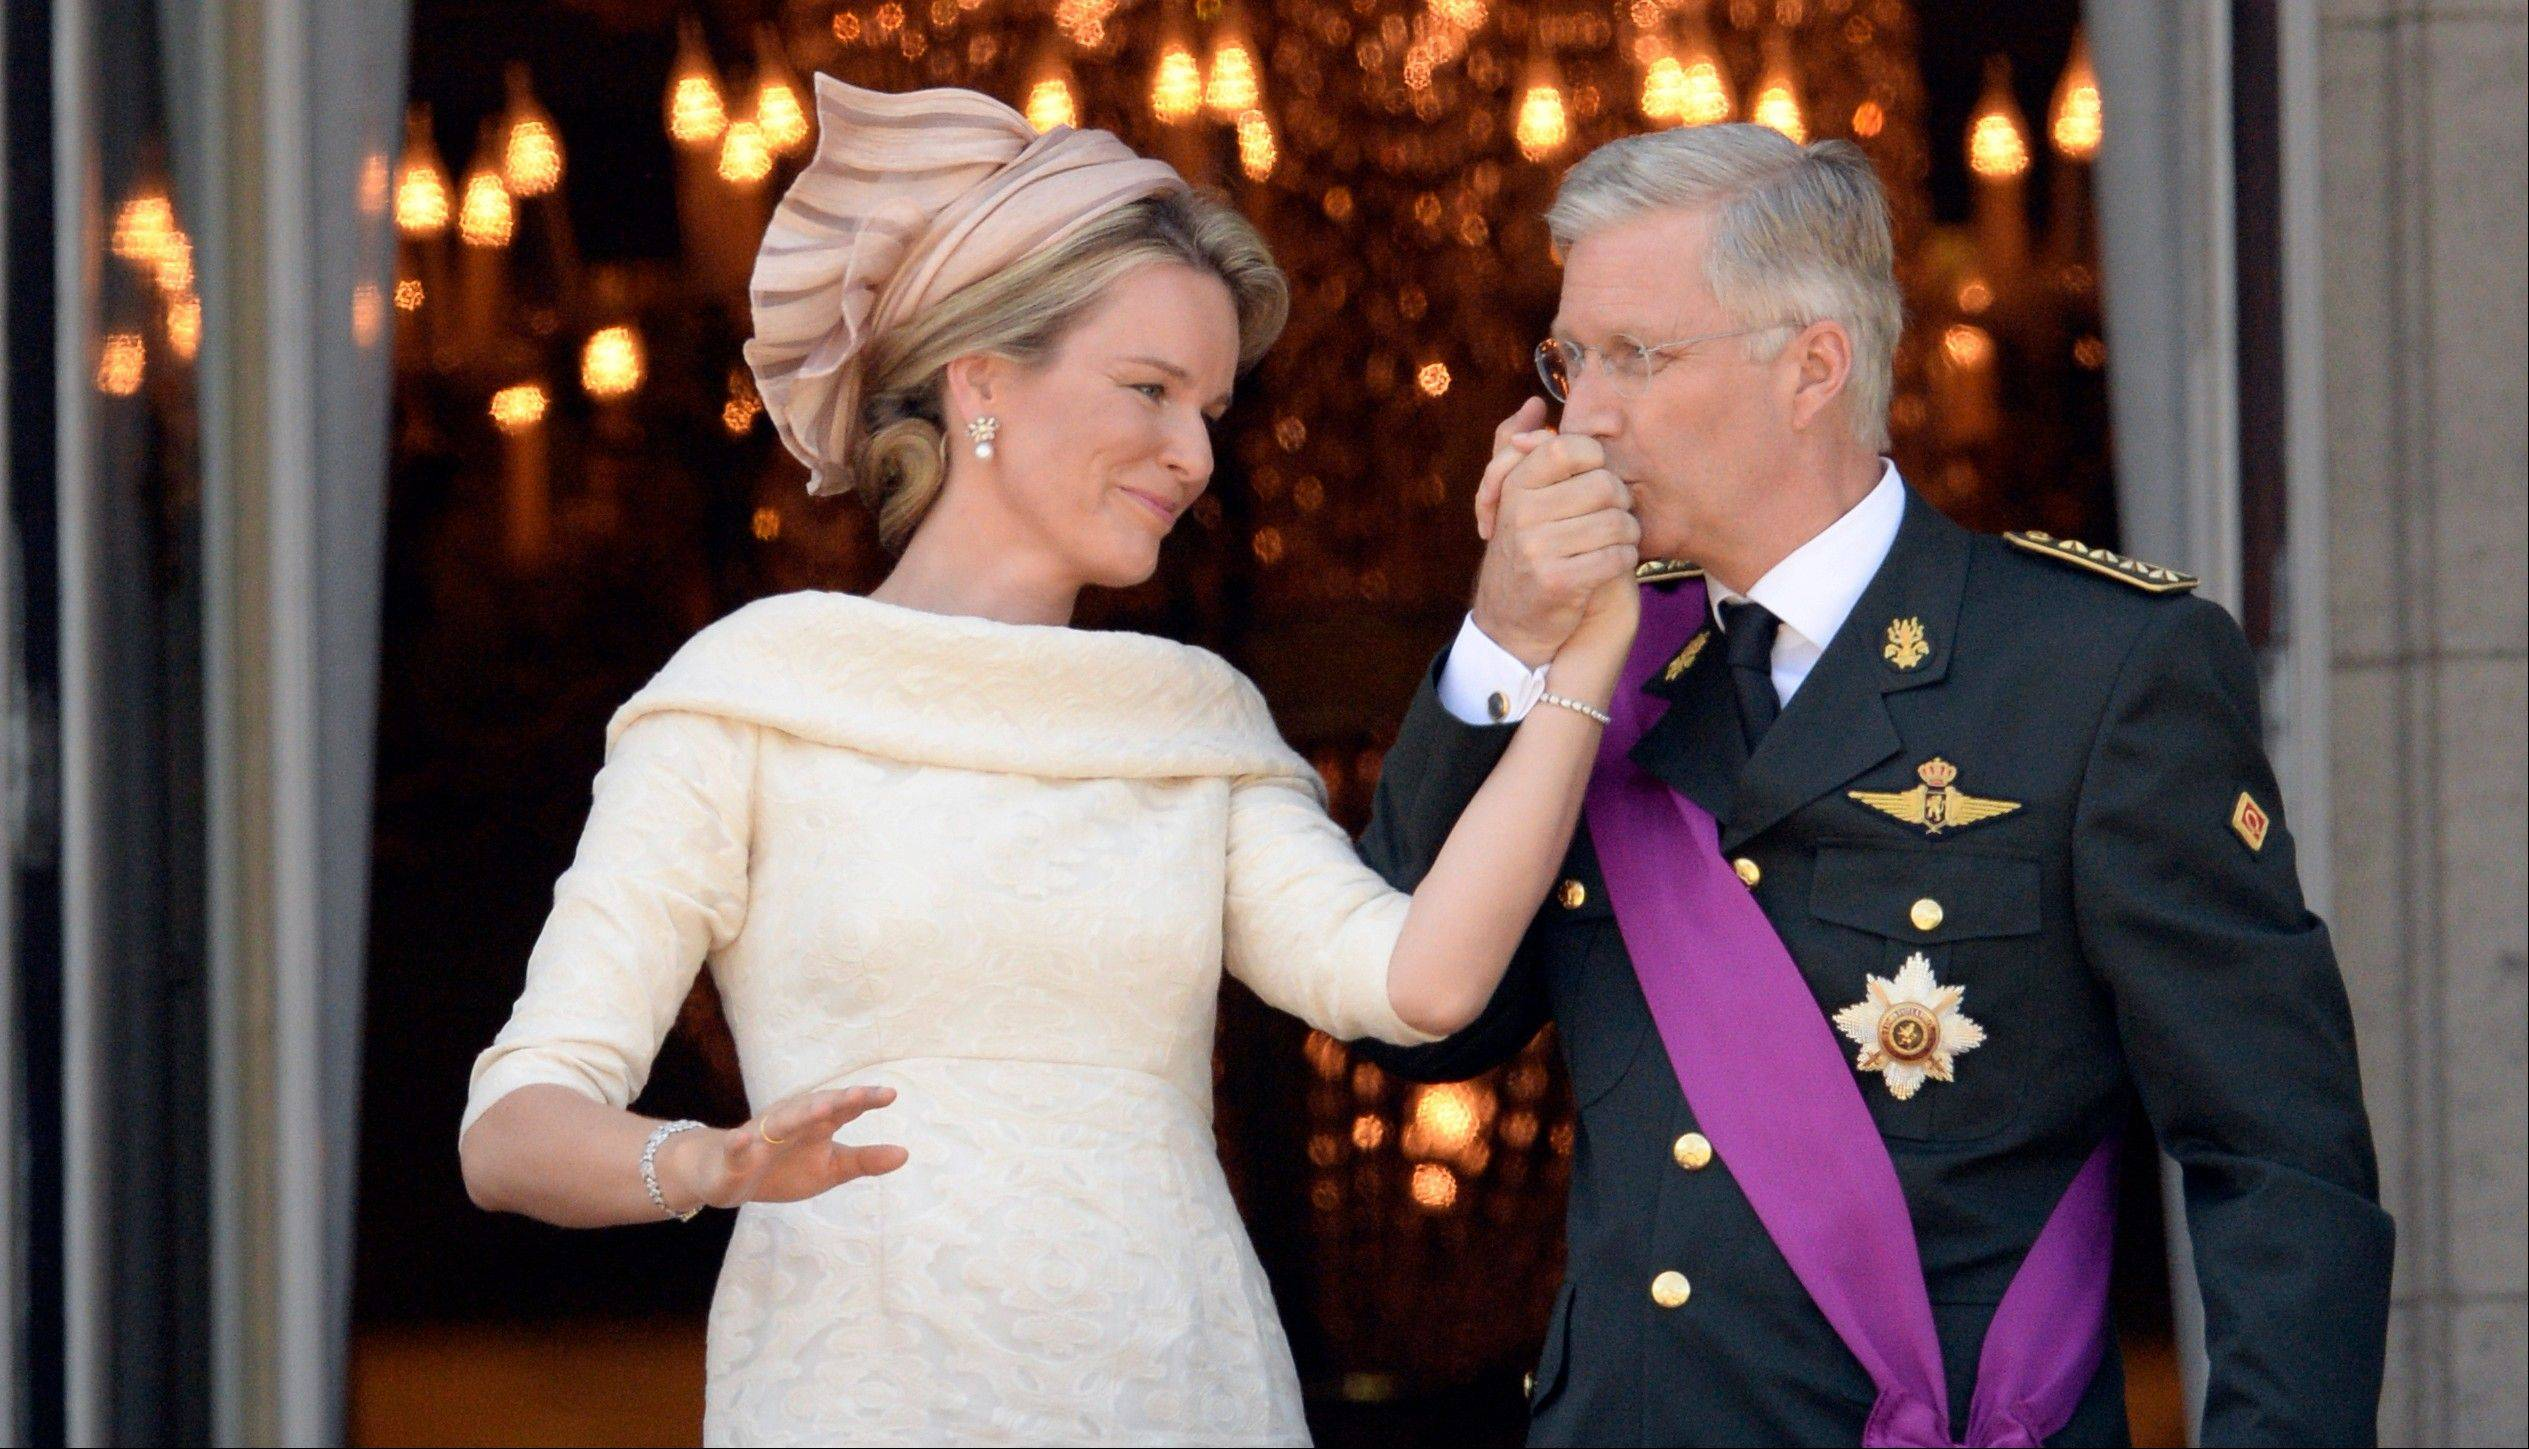 Belgium's King Philippe, right, kisses the hand of Queen Mathilde as they stand on the balcony of the royal palace in Brussels on Sunday, July 21, 2013. Philippe has taken the oath before parliament to become Belgium's seventh king after his father Albert II abdicated as the head of this fractured nation. Earlier Sunday, the 79-year-old Albert signed away his rights as the kingdom's largely ceremonial ruler at the royal palace in the presence of Prime Minister Elio Di Rupo, who holds the political power in this 183-year-old parliamentary democracy.